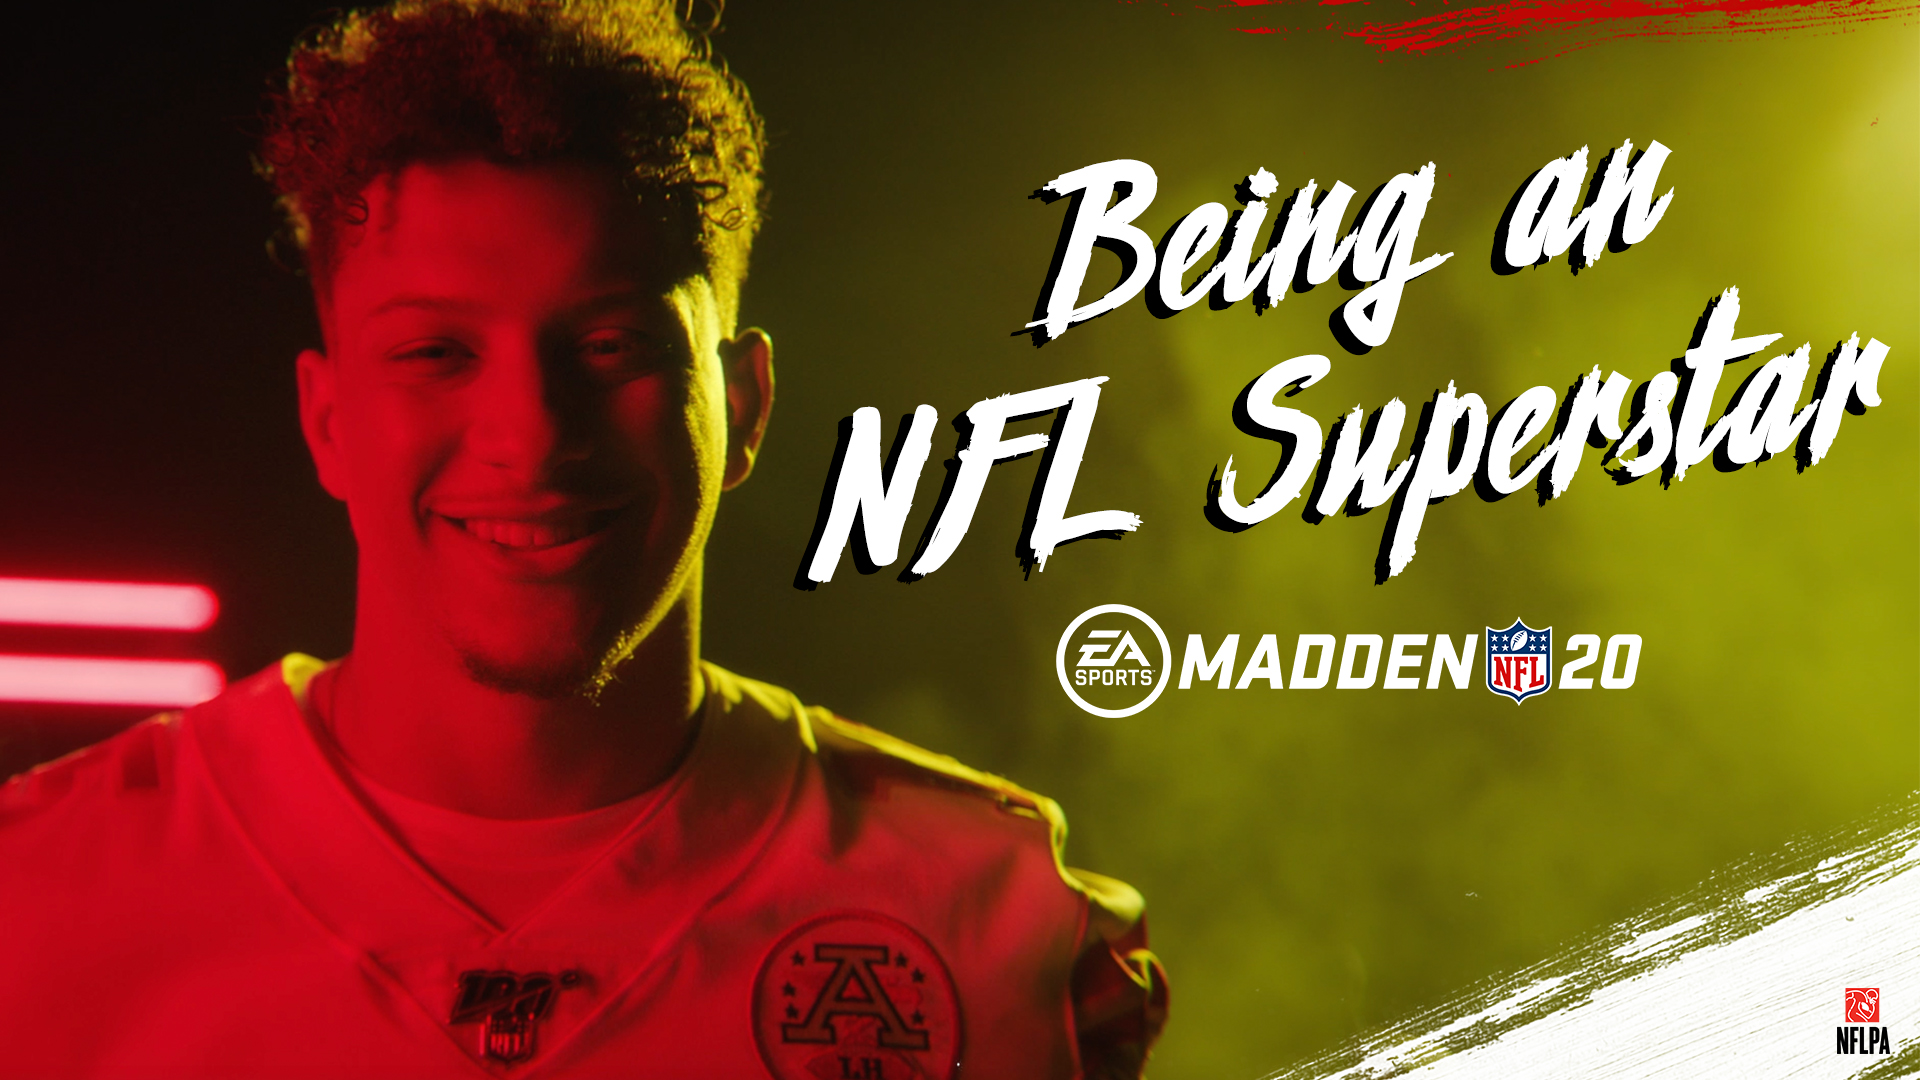 154bd1f8085 Being an NFL Superstar, EA Madden 20 logo, player Patrick Mahomes in red  lighting